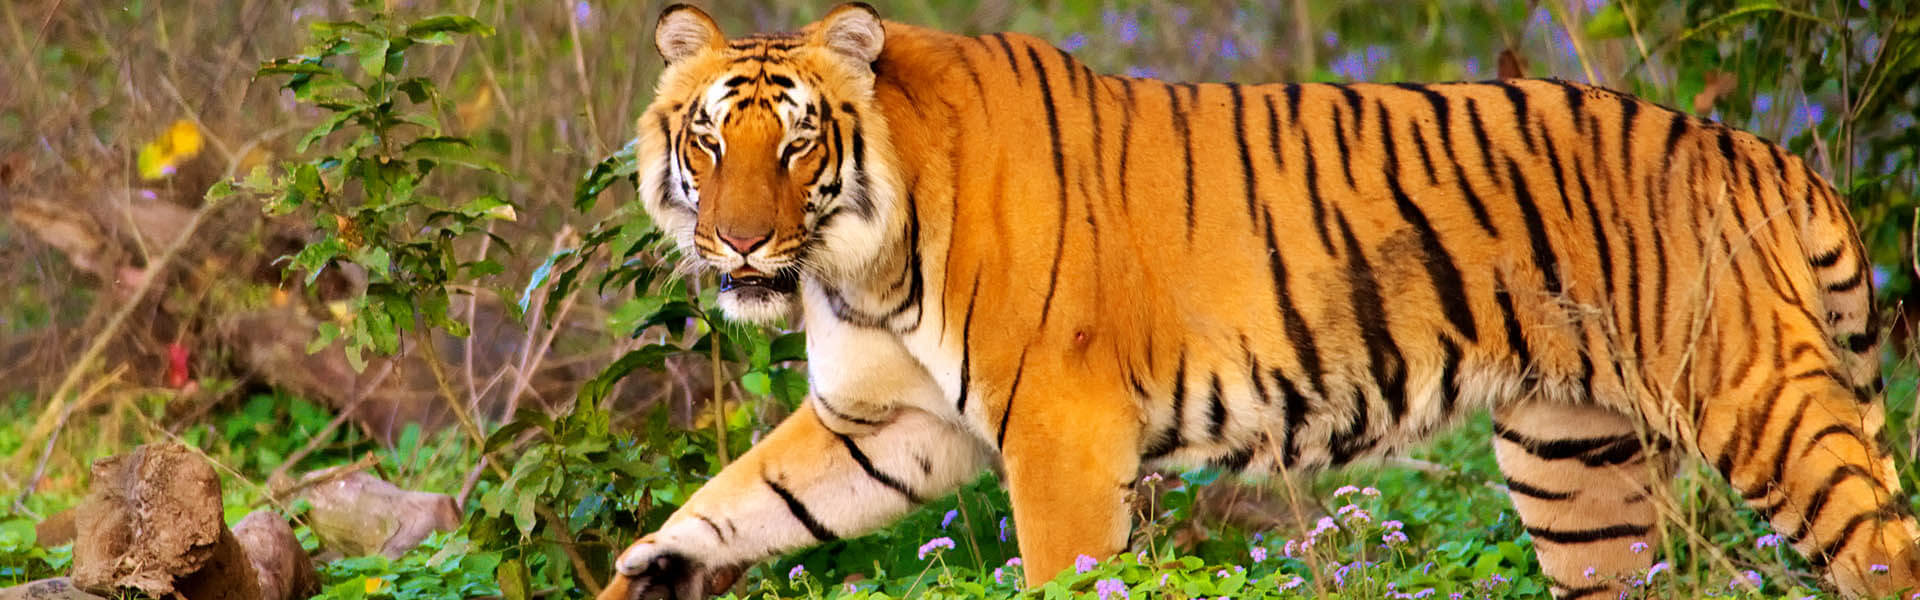 Corbett National Park, Jim Corbett, National Park